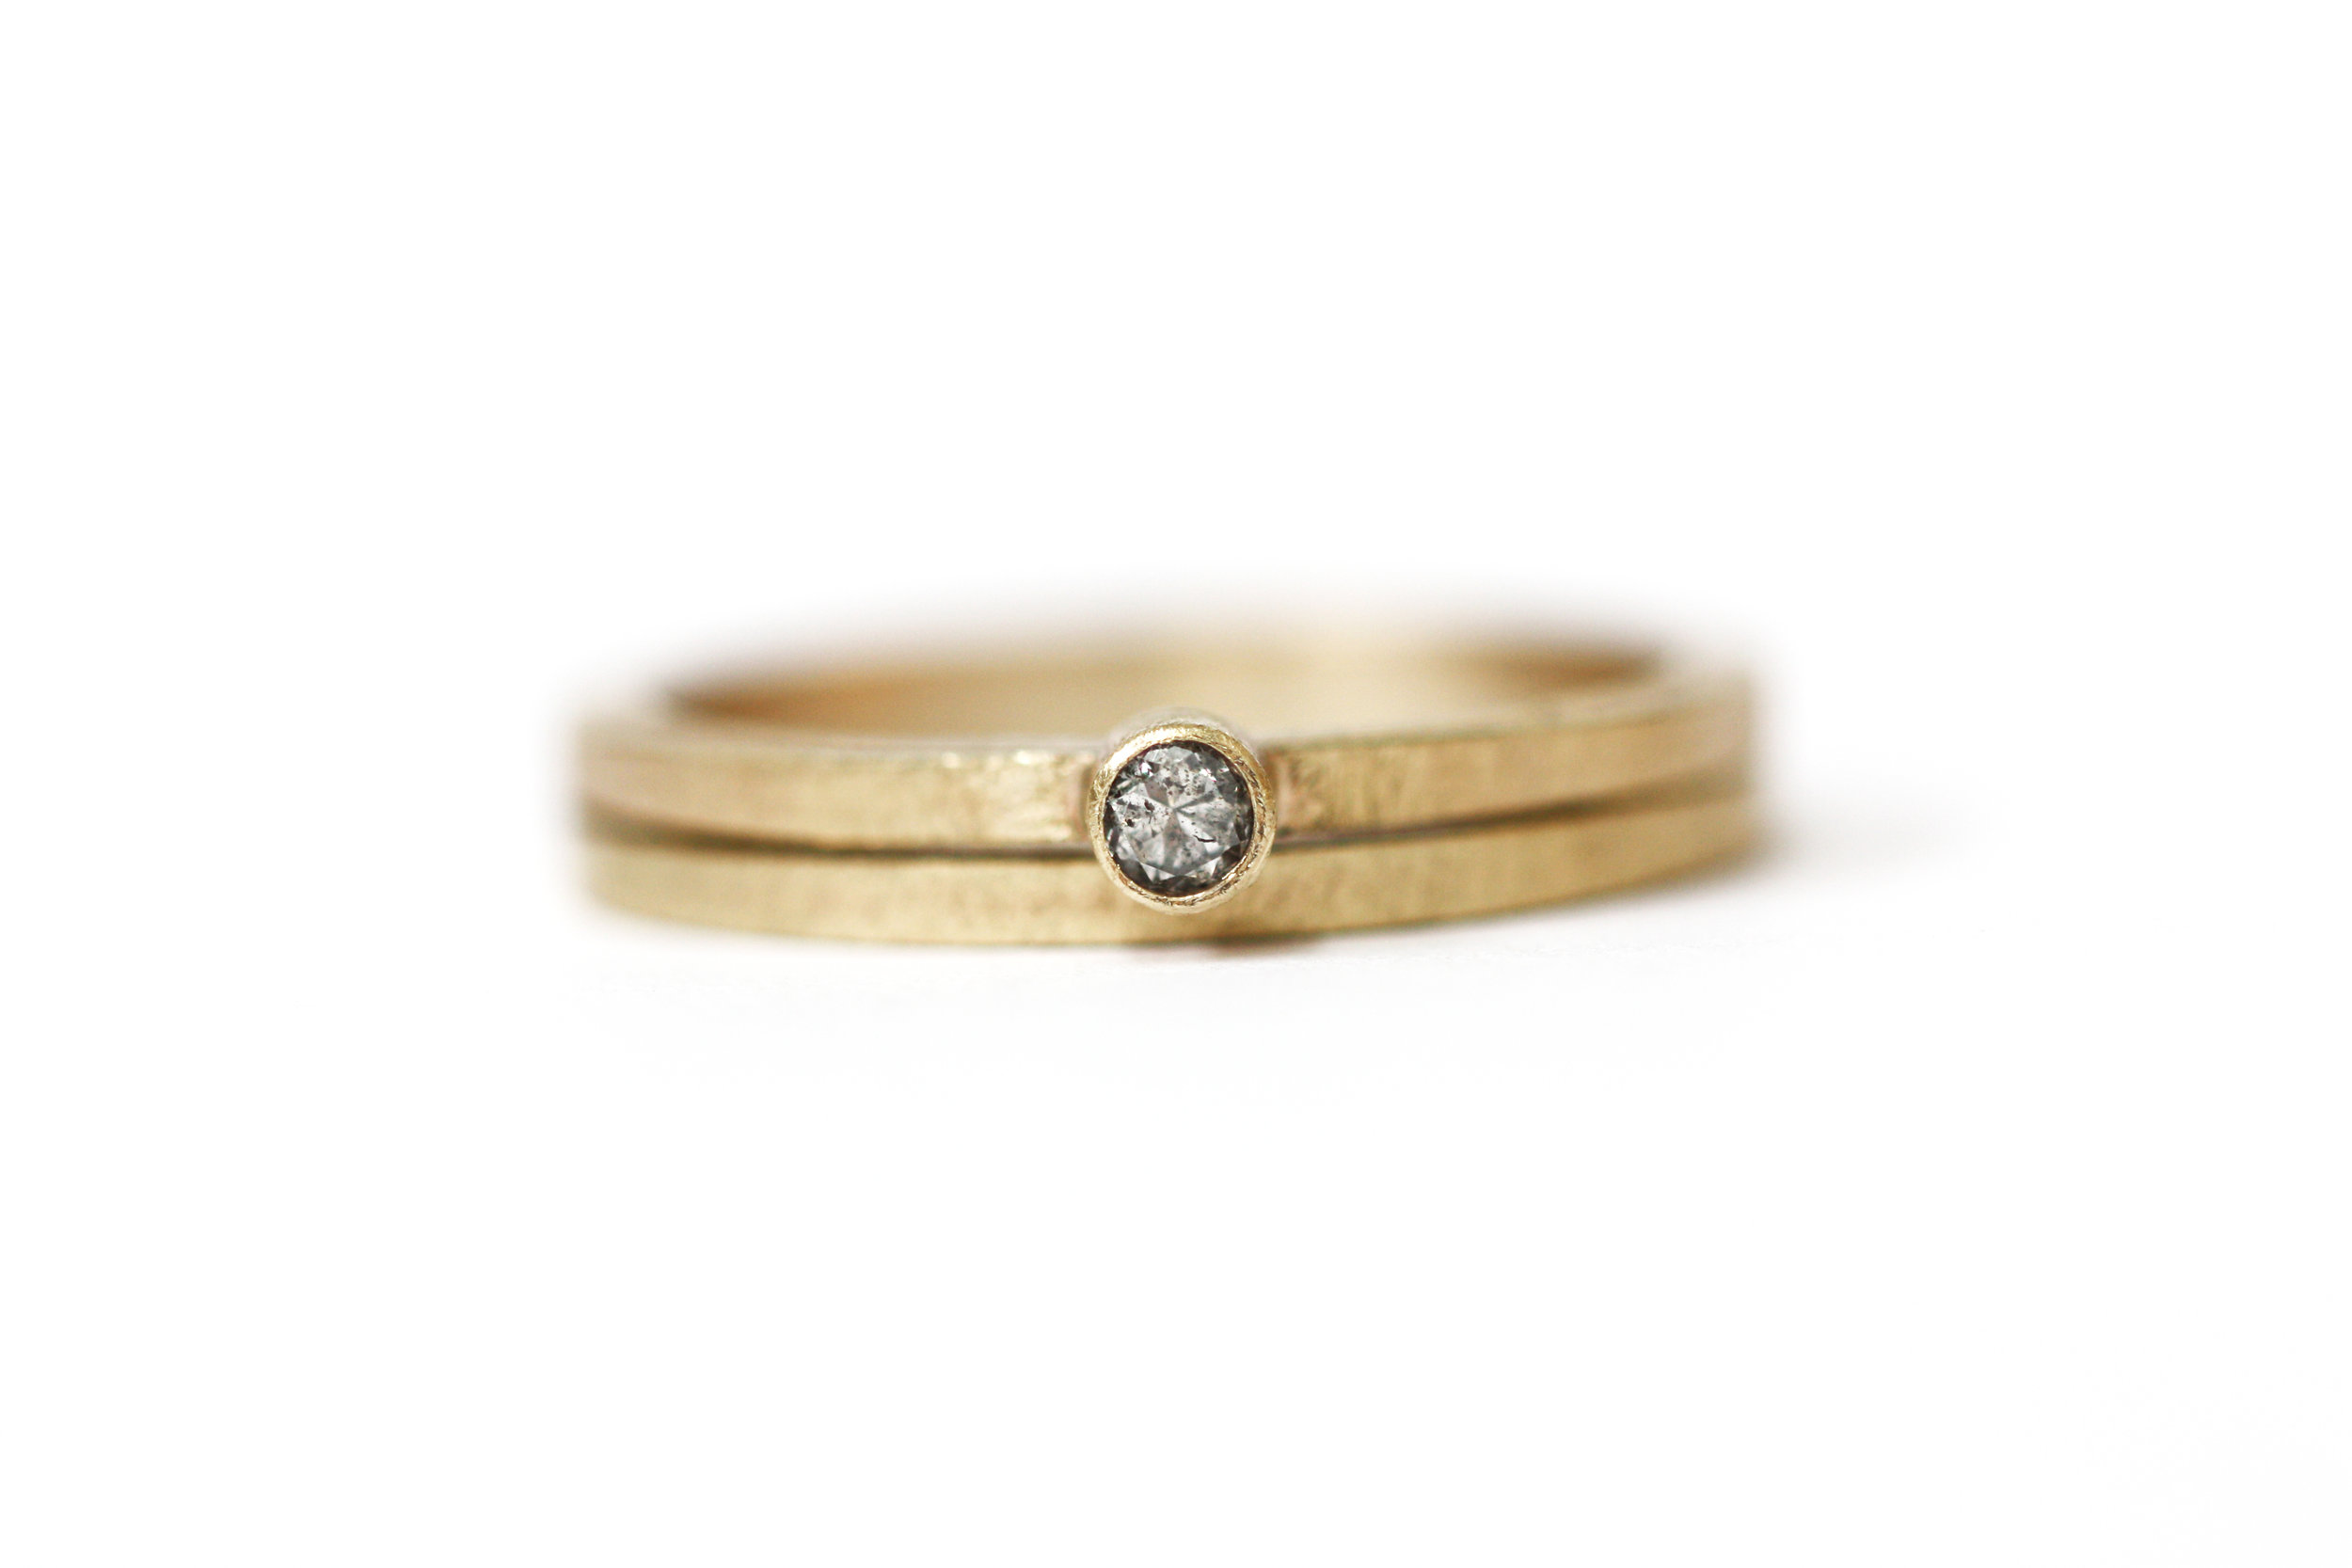 Grey & Gold  Warm 9ct yellow gold and a grey diamond were used to create this ring set.